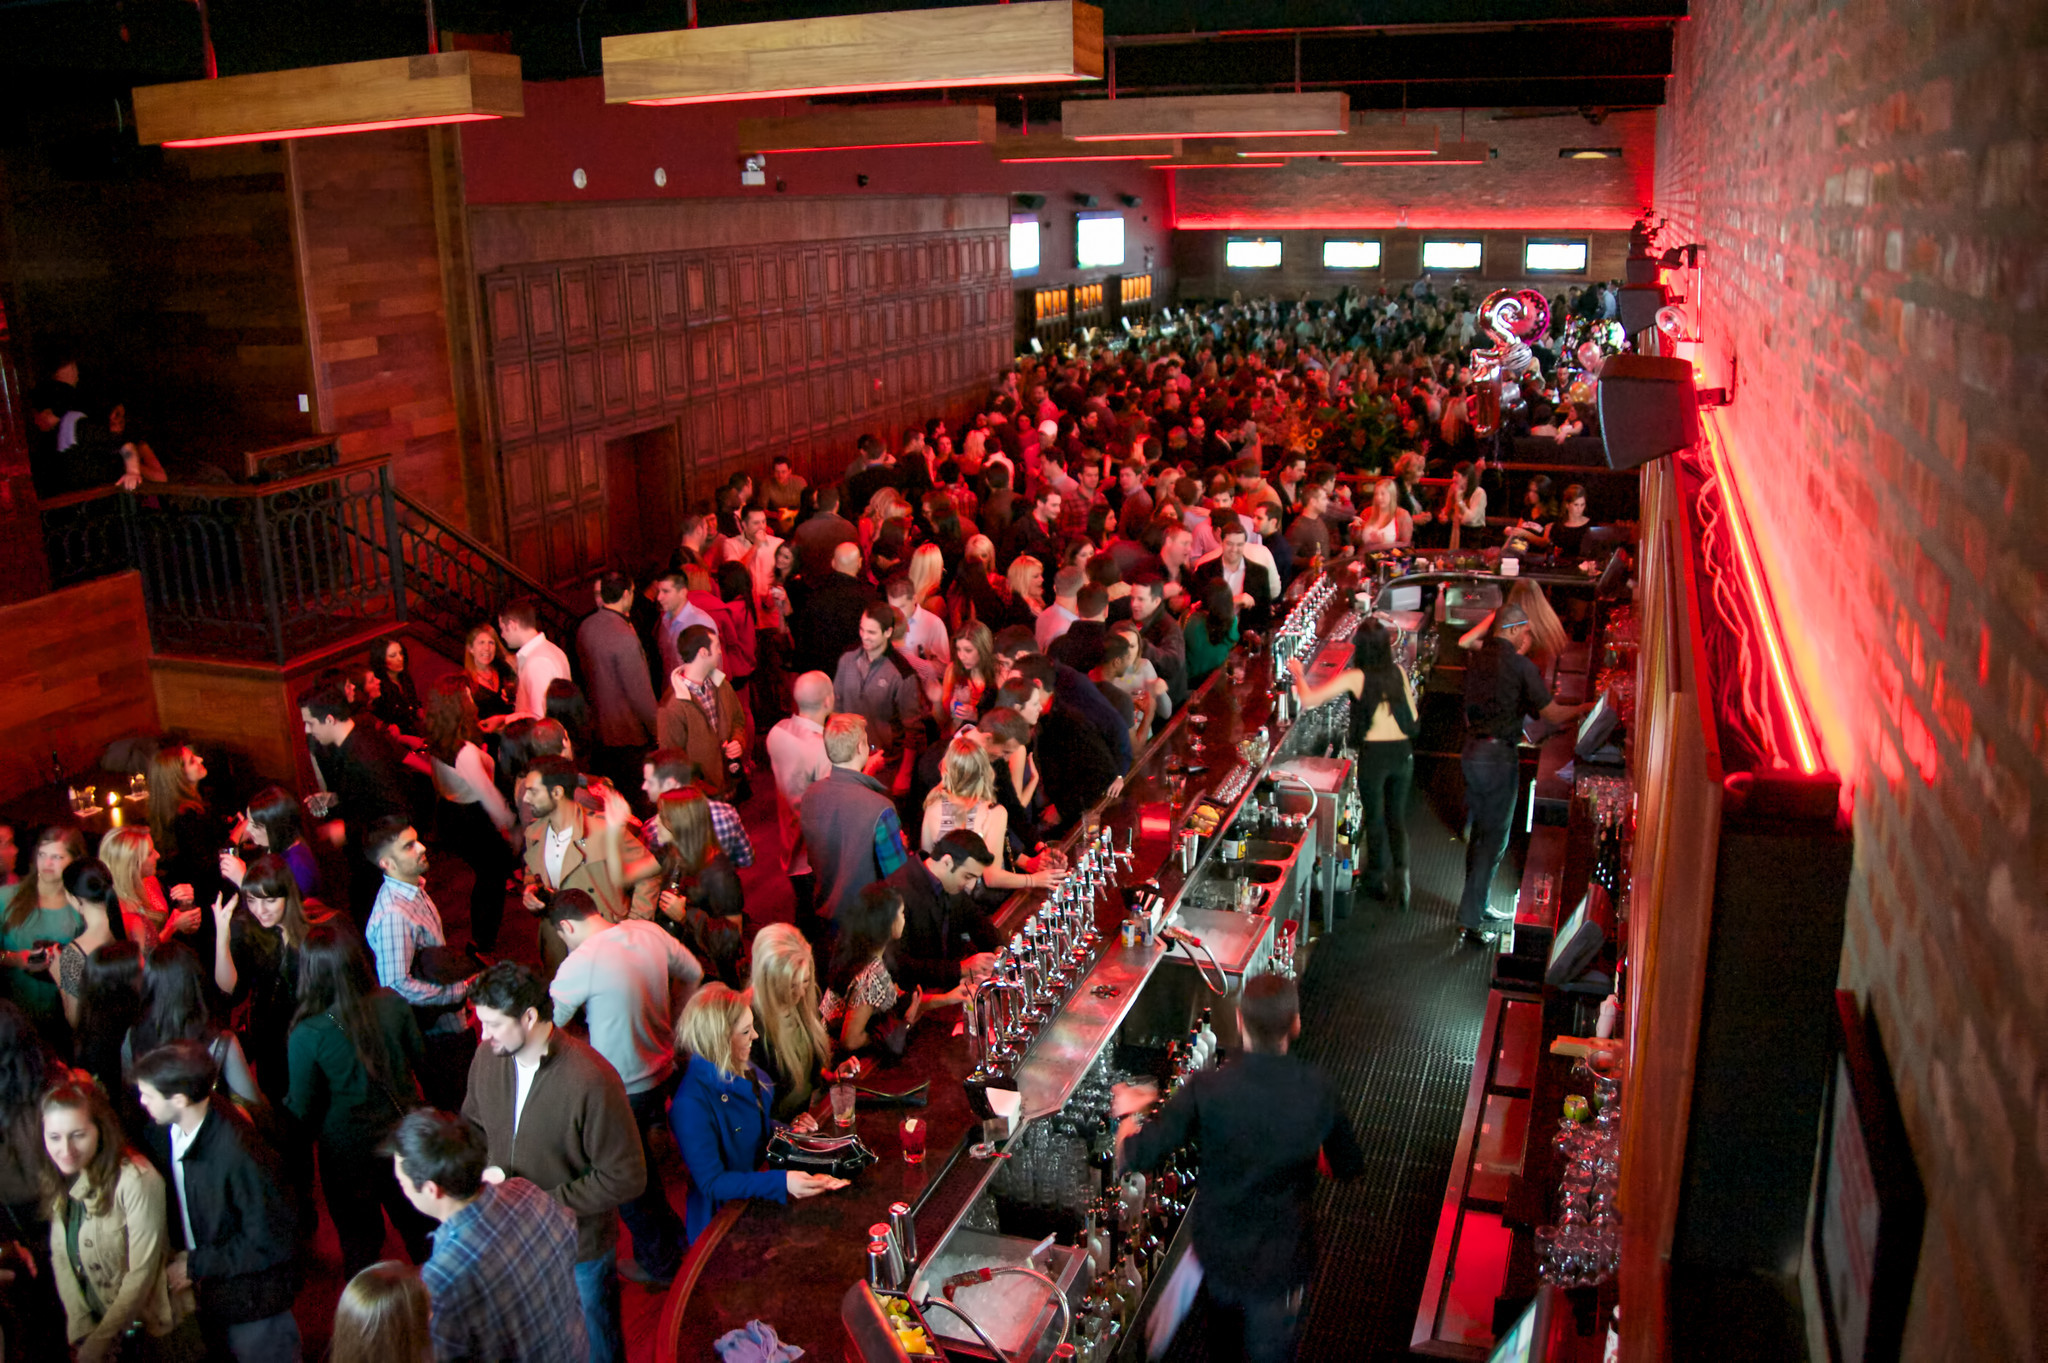 John Barleycorn Group To Open River North Club Tunnel